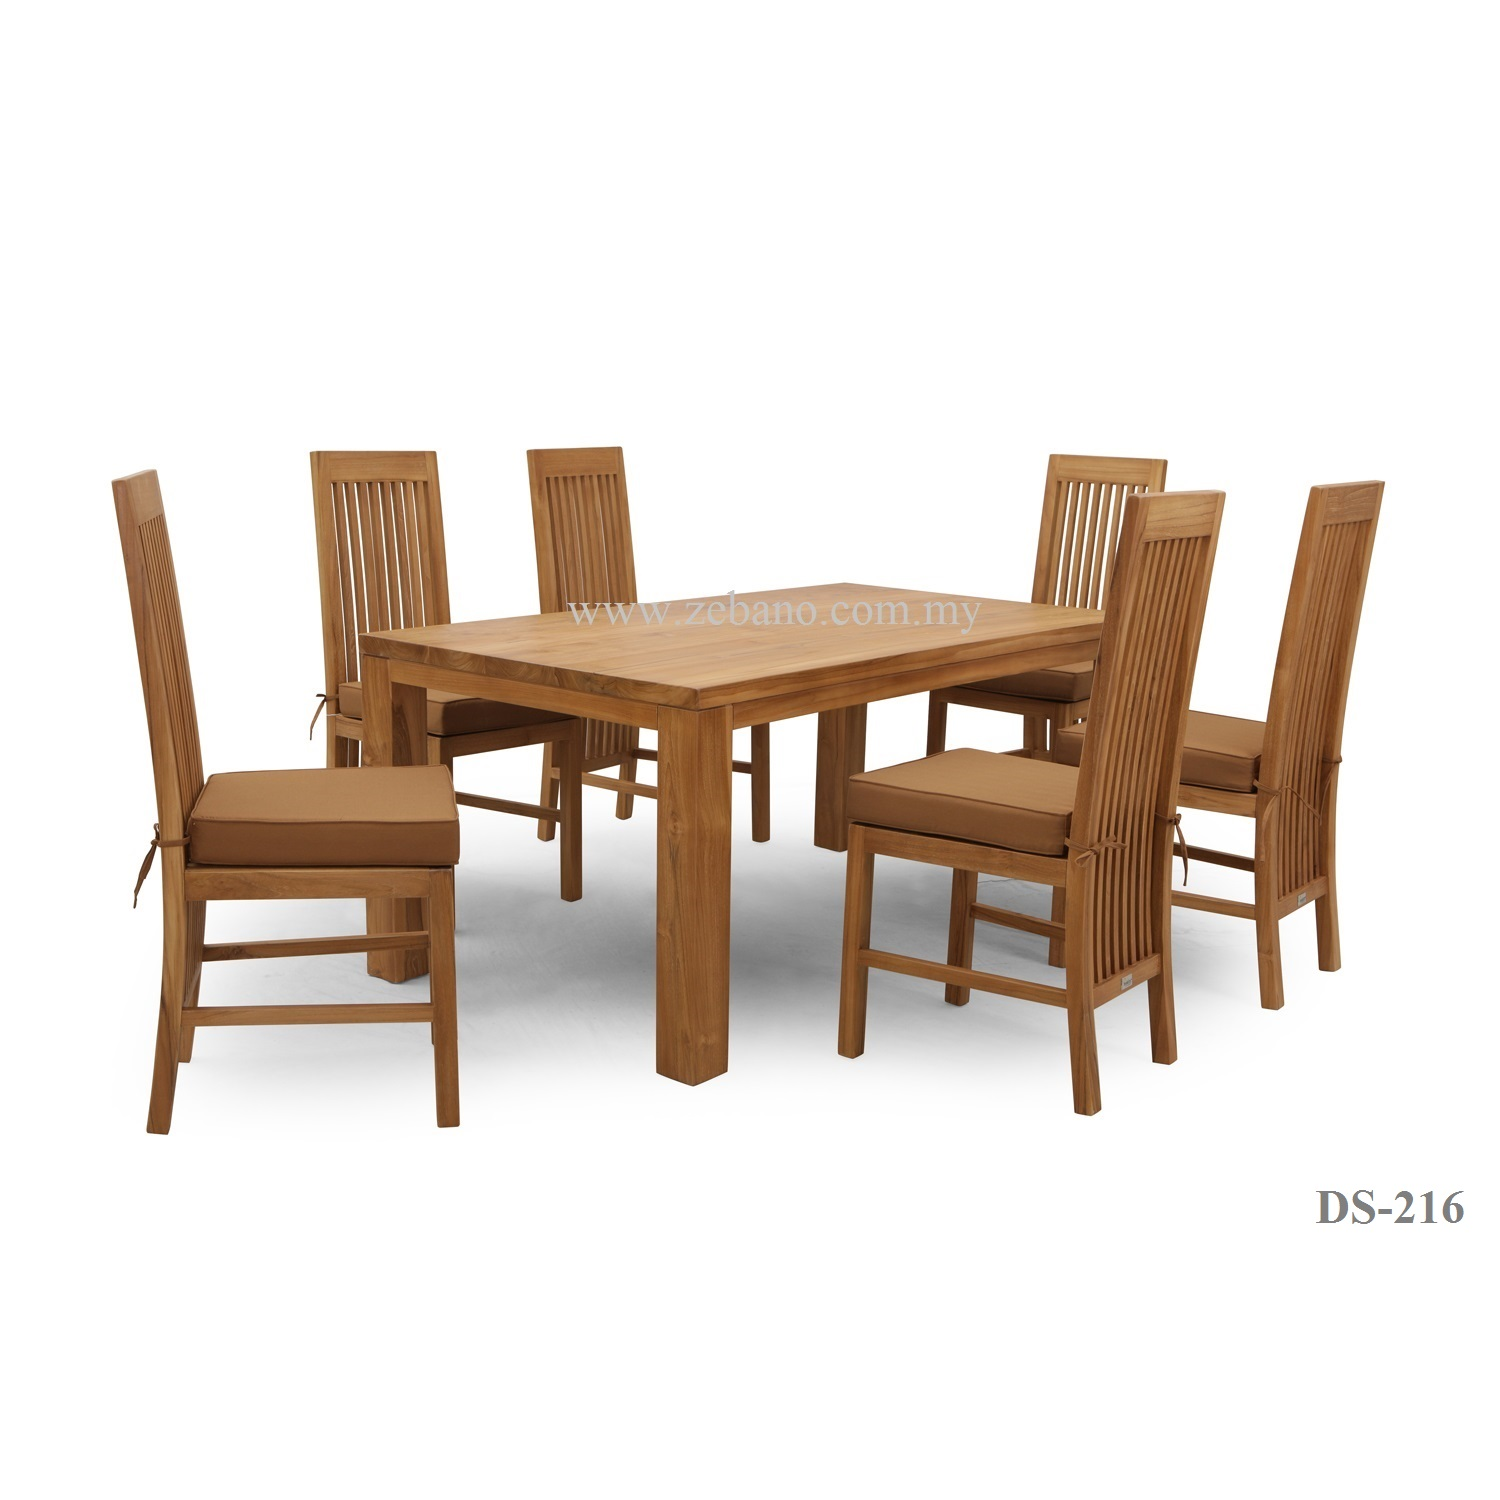 6 seater teak wood dining set